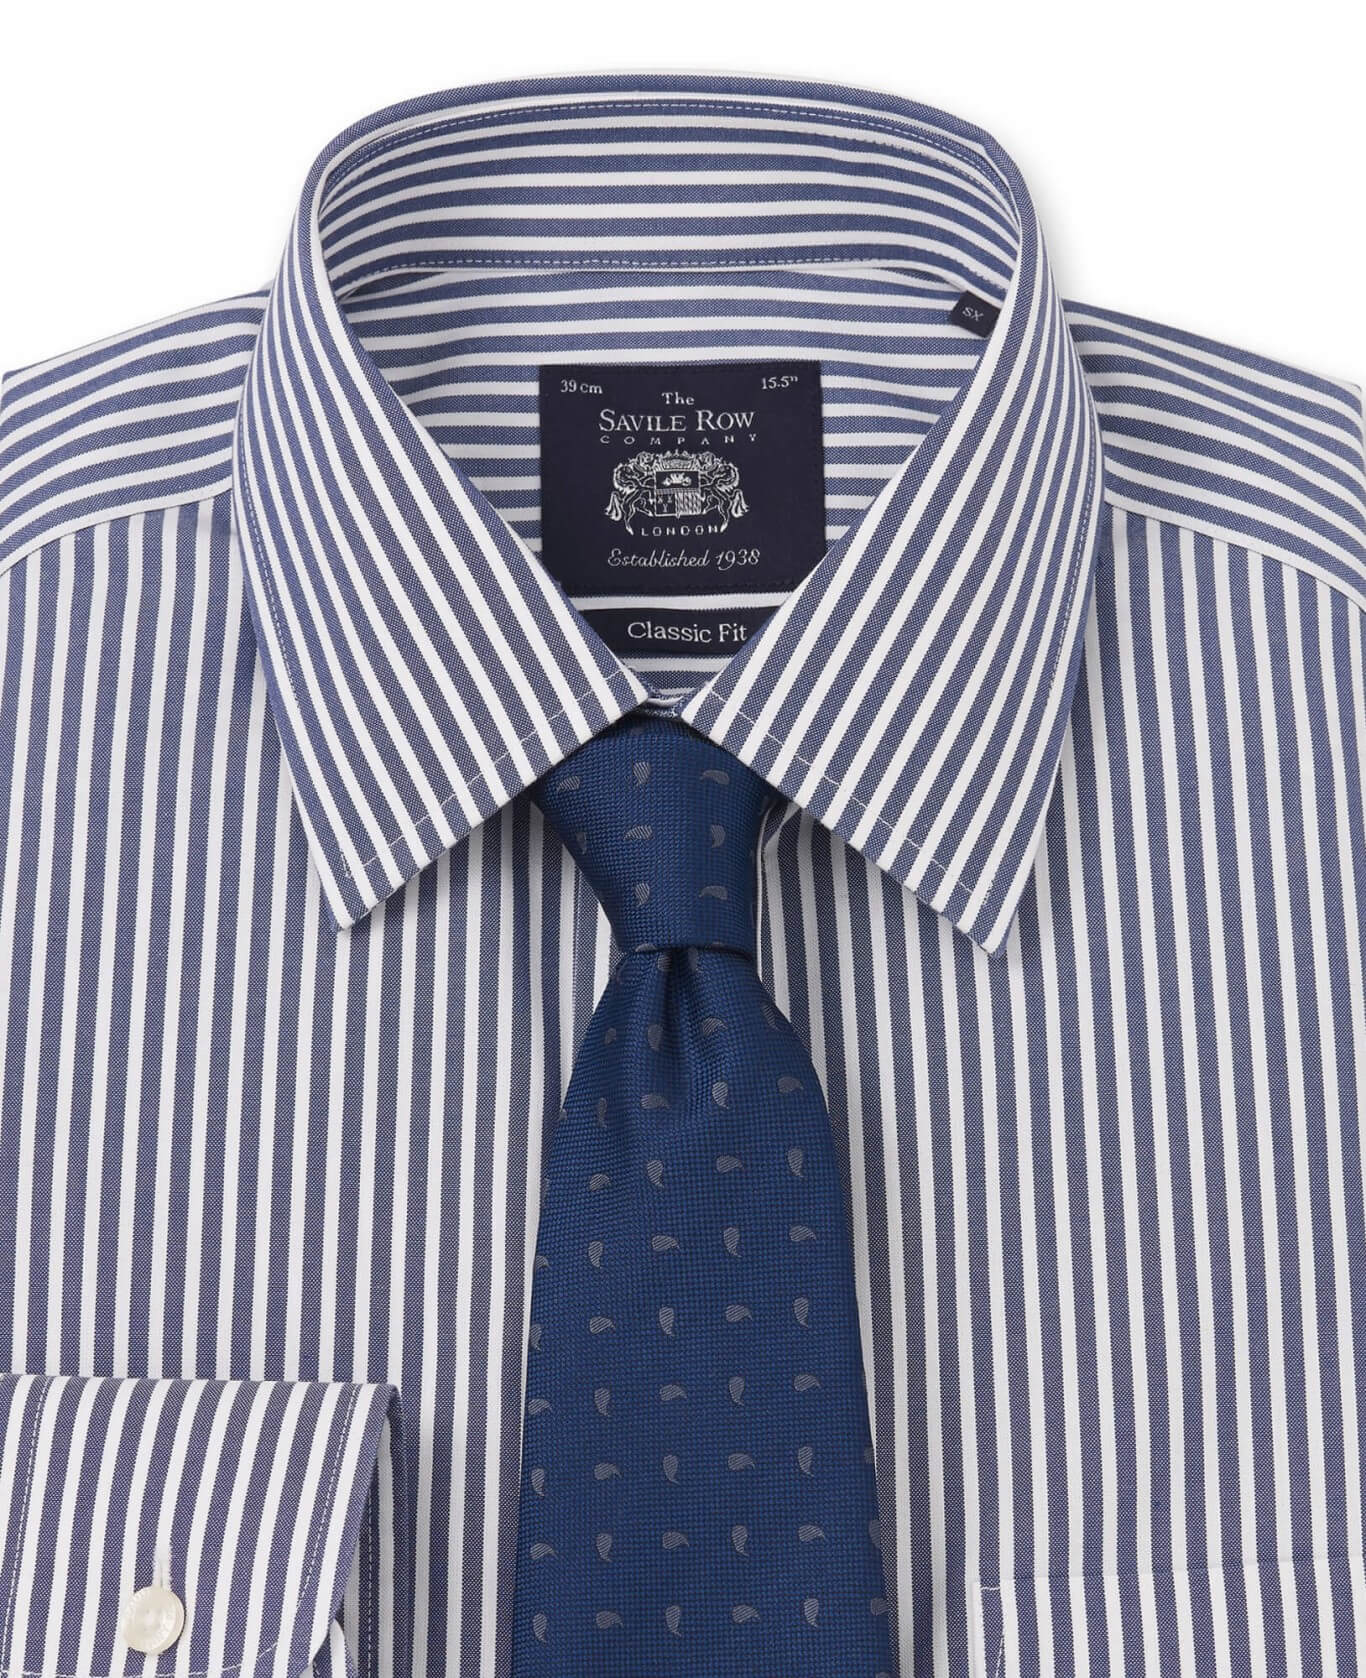 NON-IRON NAVY WHITE BENGAL STRIPE CLASSIC FIT SHIRT- DOUBLE CUFF-969DNAV